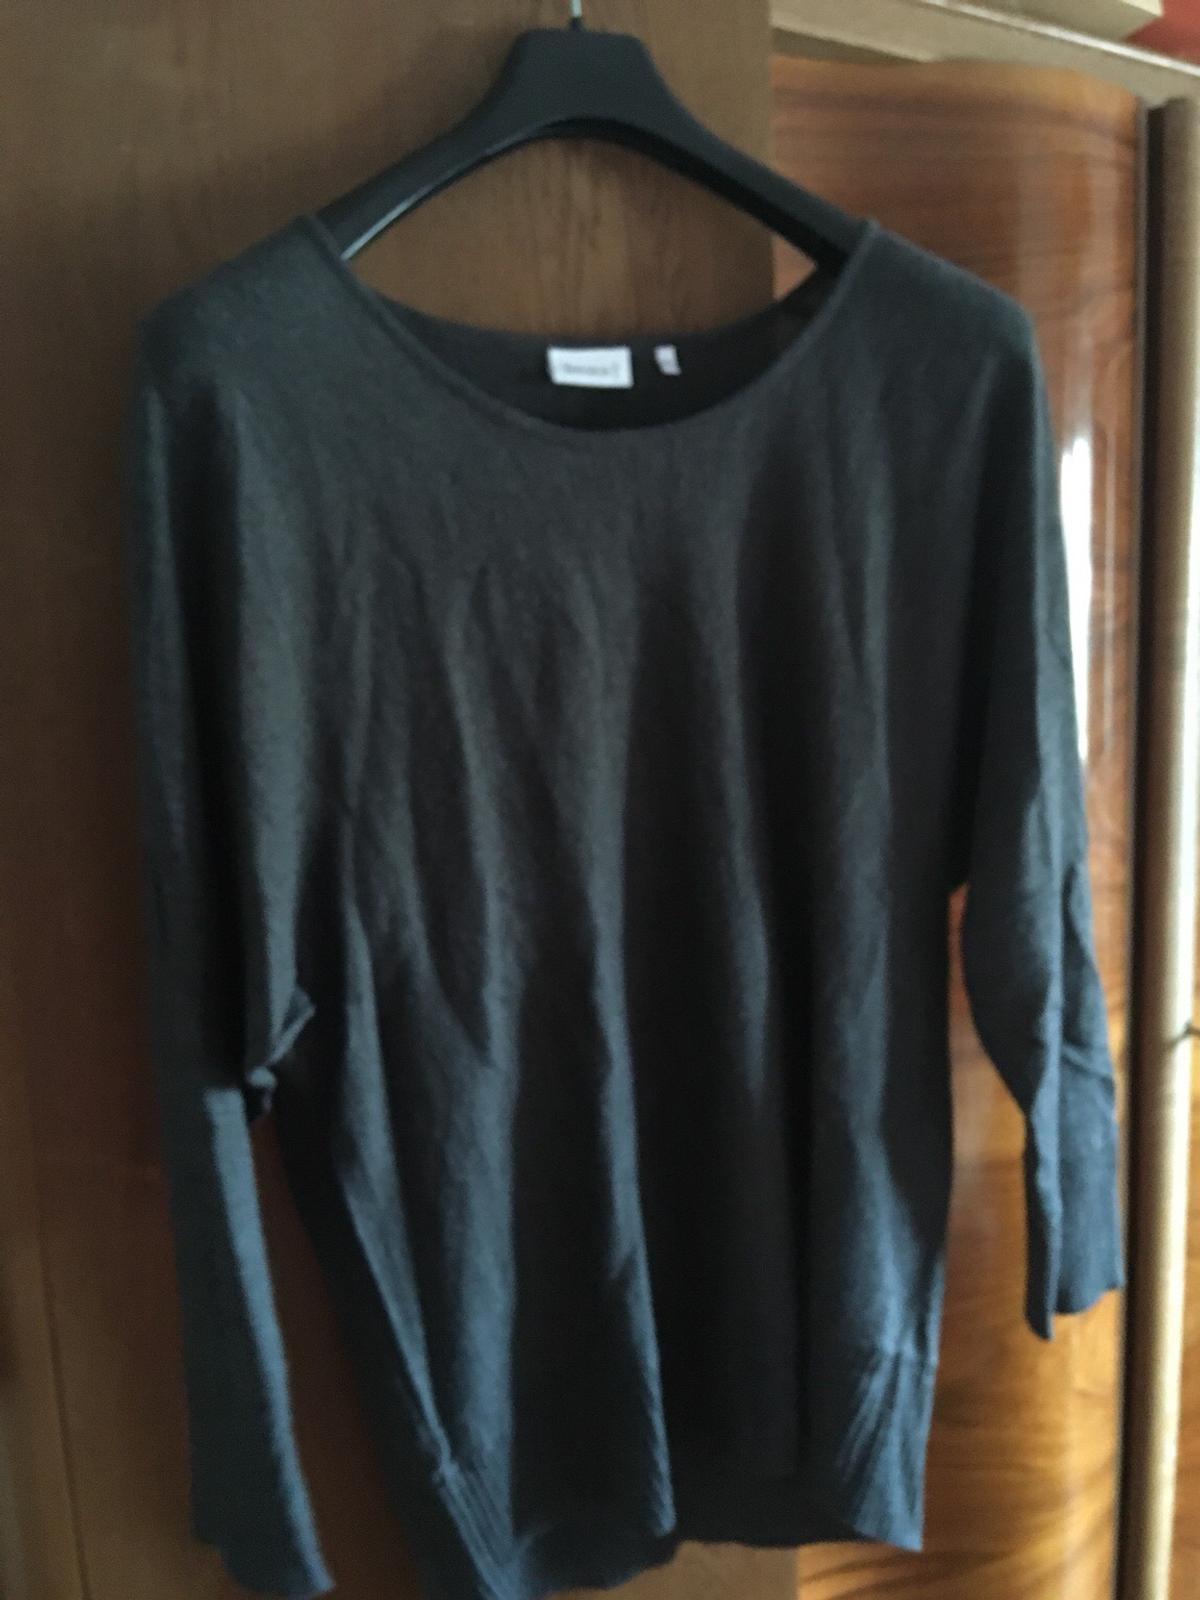 newest d41d6 1bde5 Long-Pullover in 67547 Worms für € 4,50 kaufen - Shpock